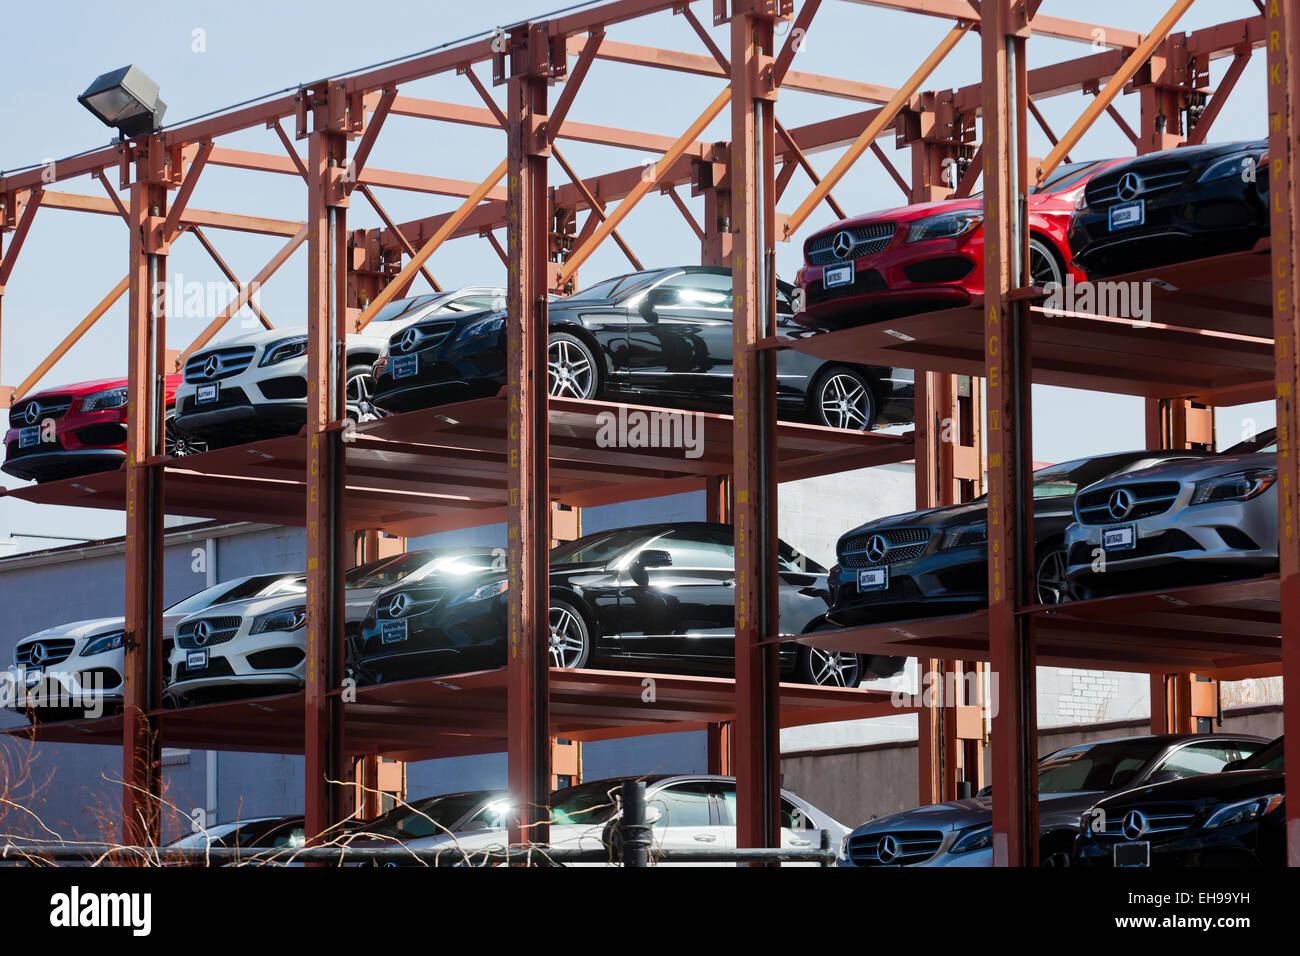 Temporary steel-framed car park structure at auto dealership